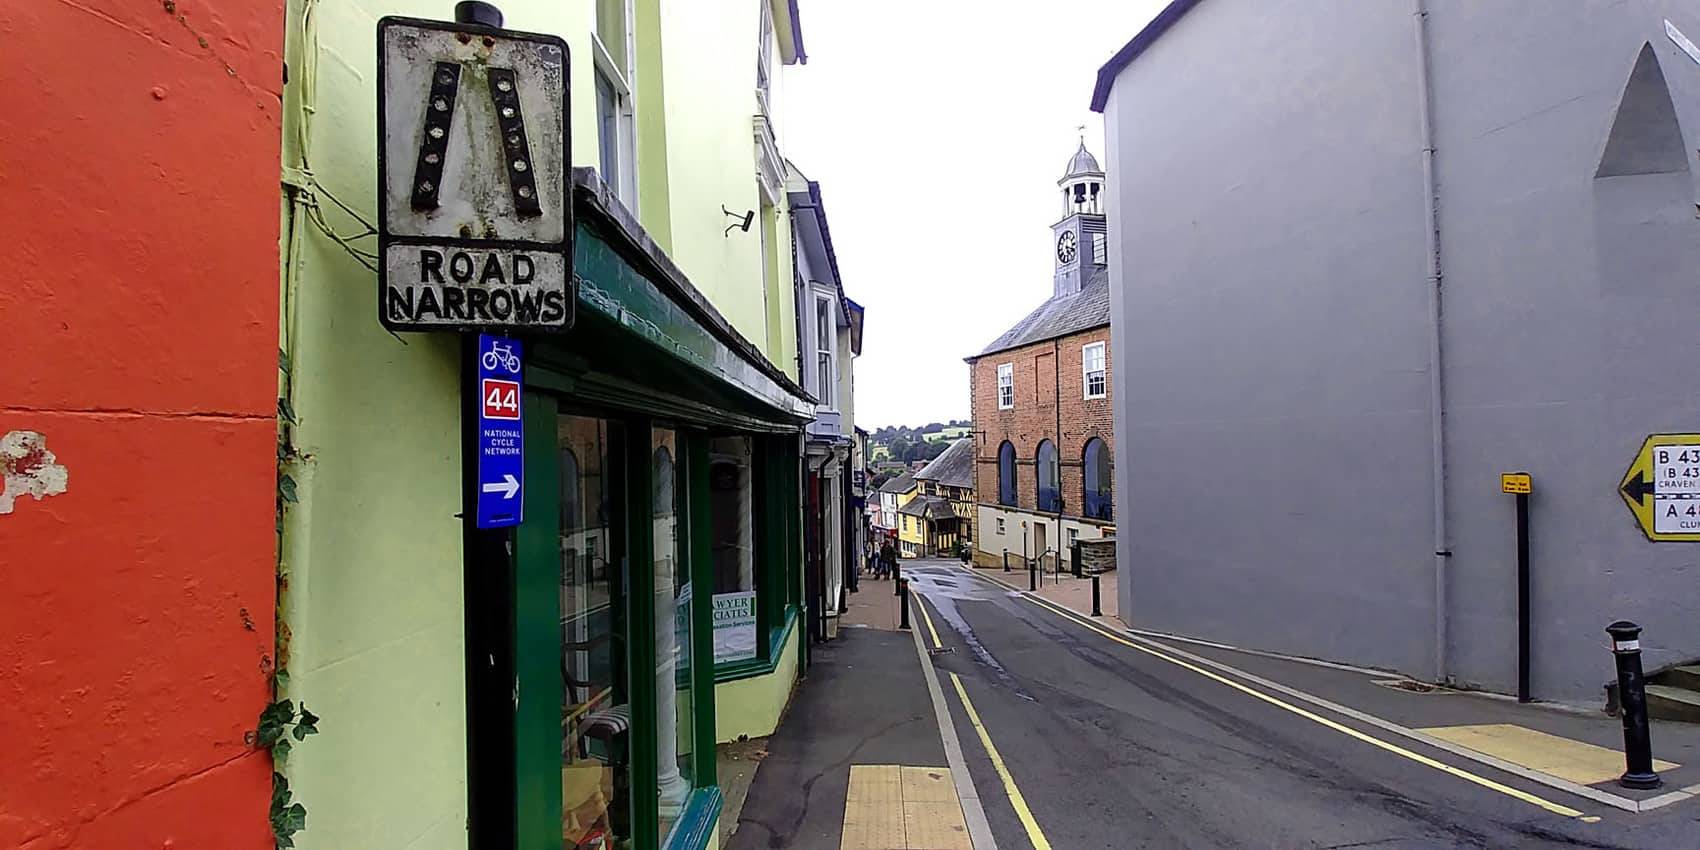 Narrow streets of Bishop's Castle in Shropshire England